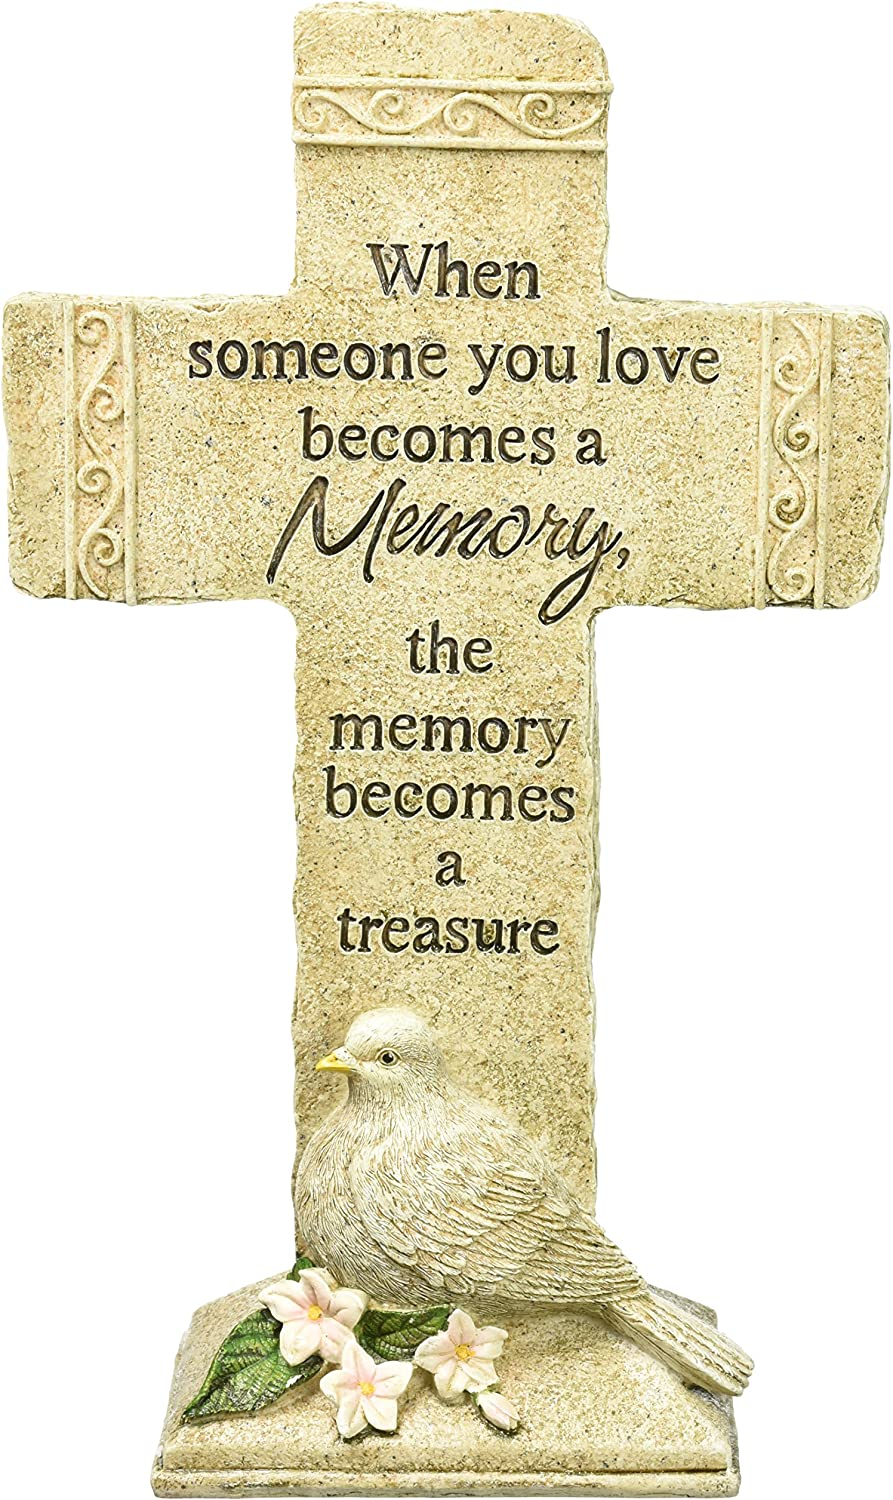 Carson Home Accents Peaceful Reflections Garden Marker, 11.75-Inch High, Memories Cross (63466)